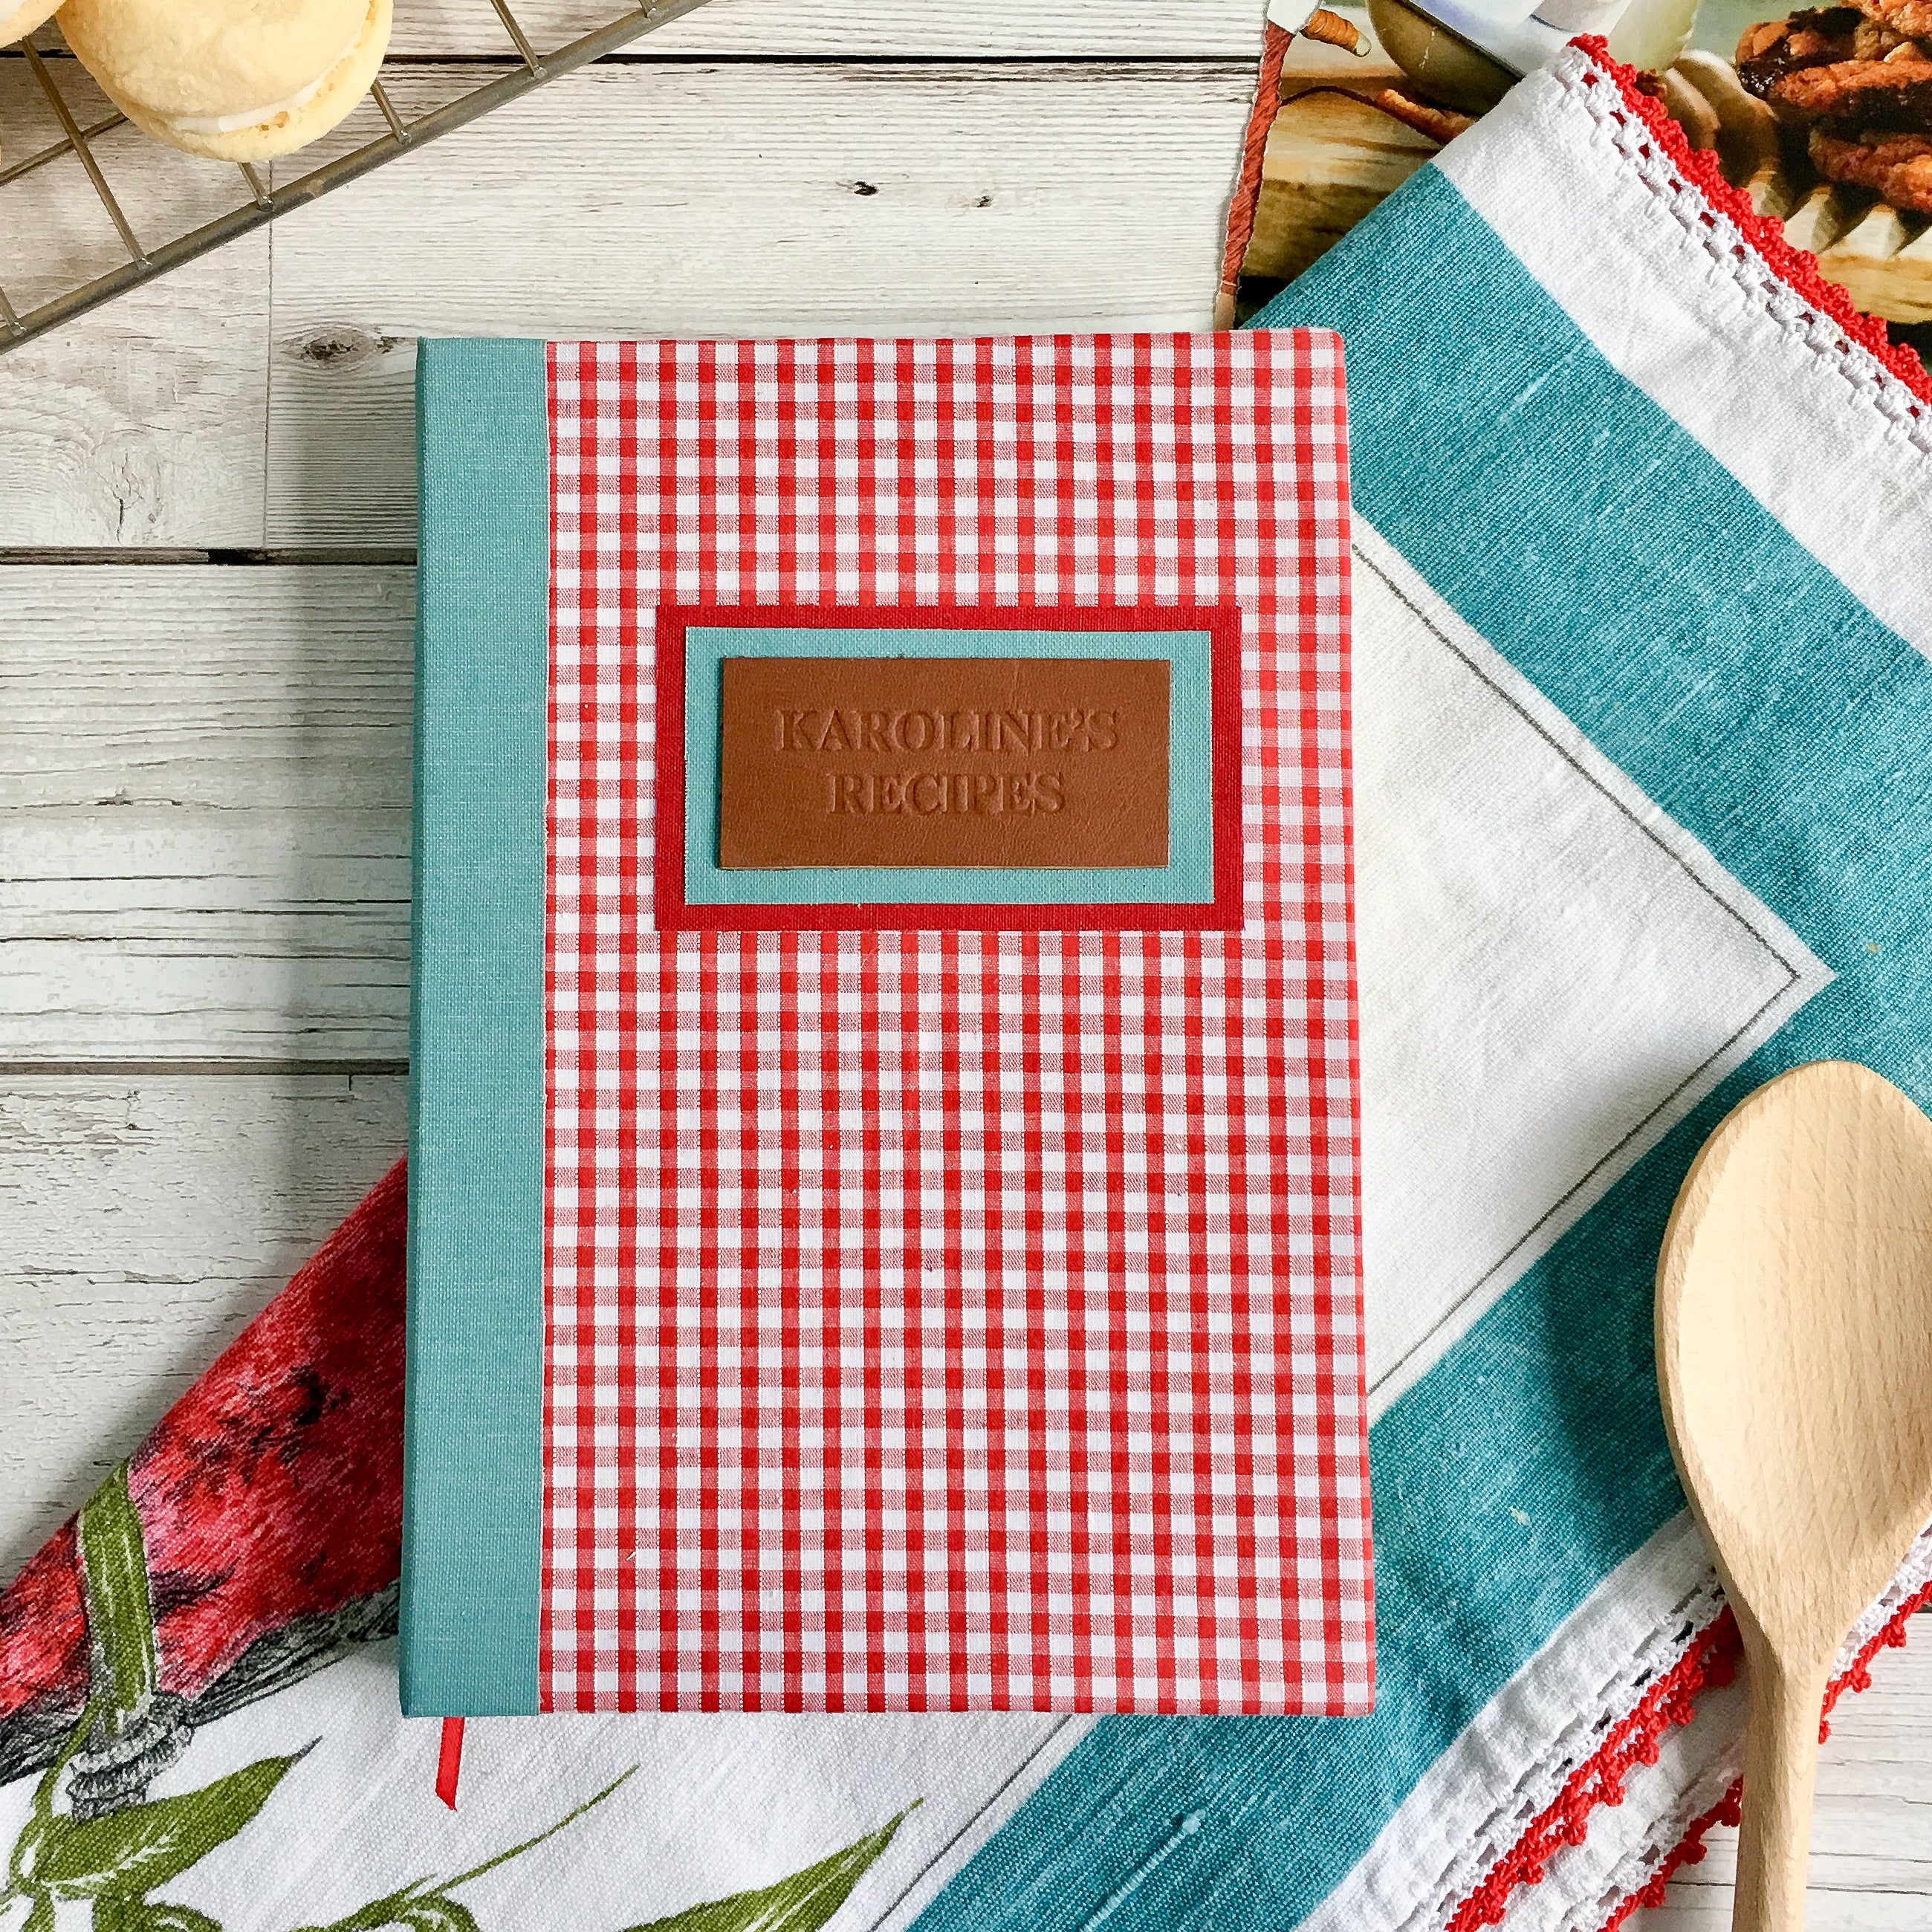 Personalised Recipe Journal, A5, Lined, Gift-Boxed - Gingham